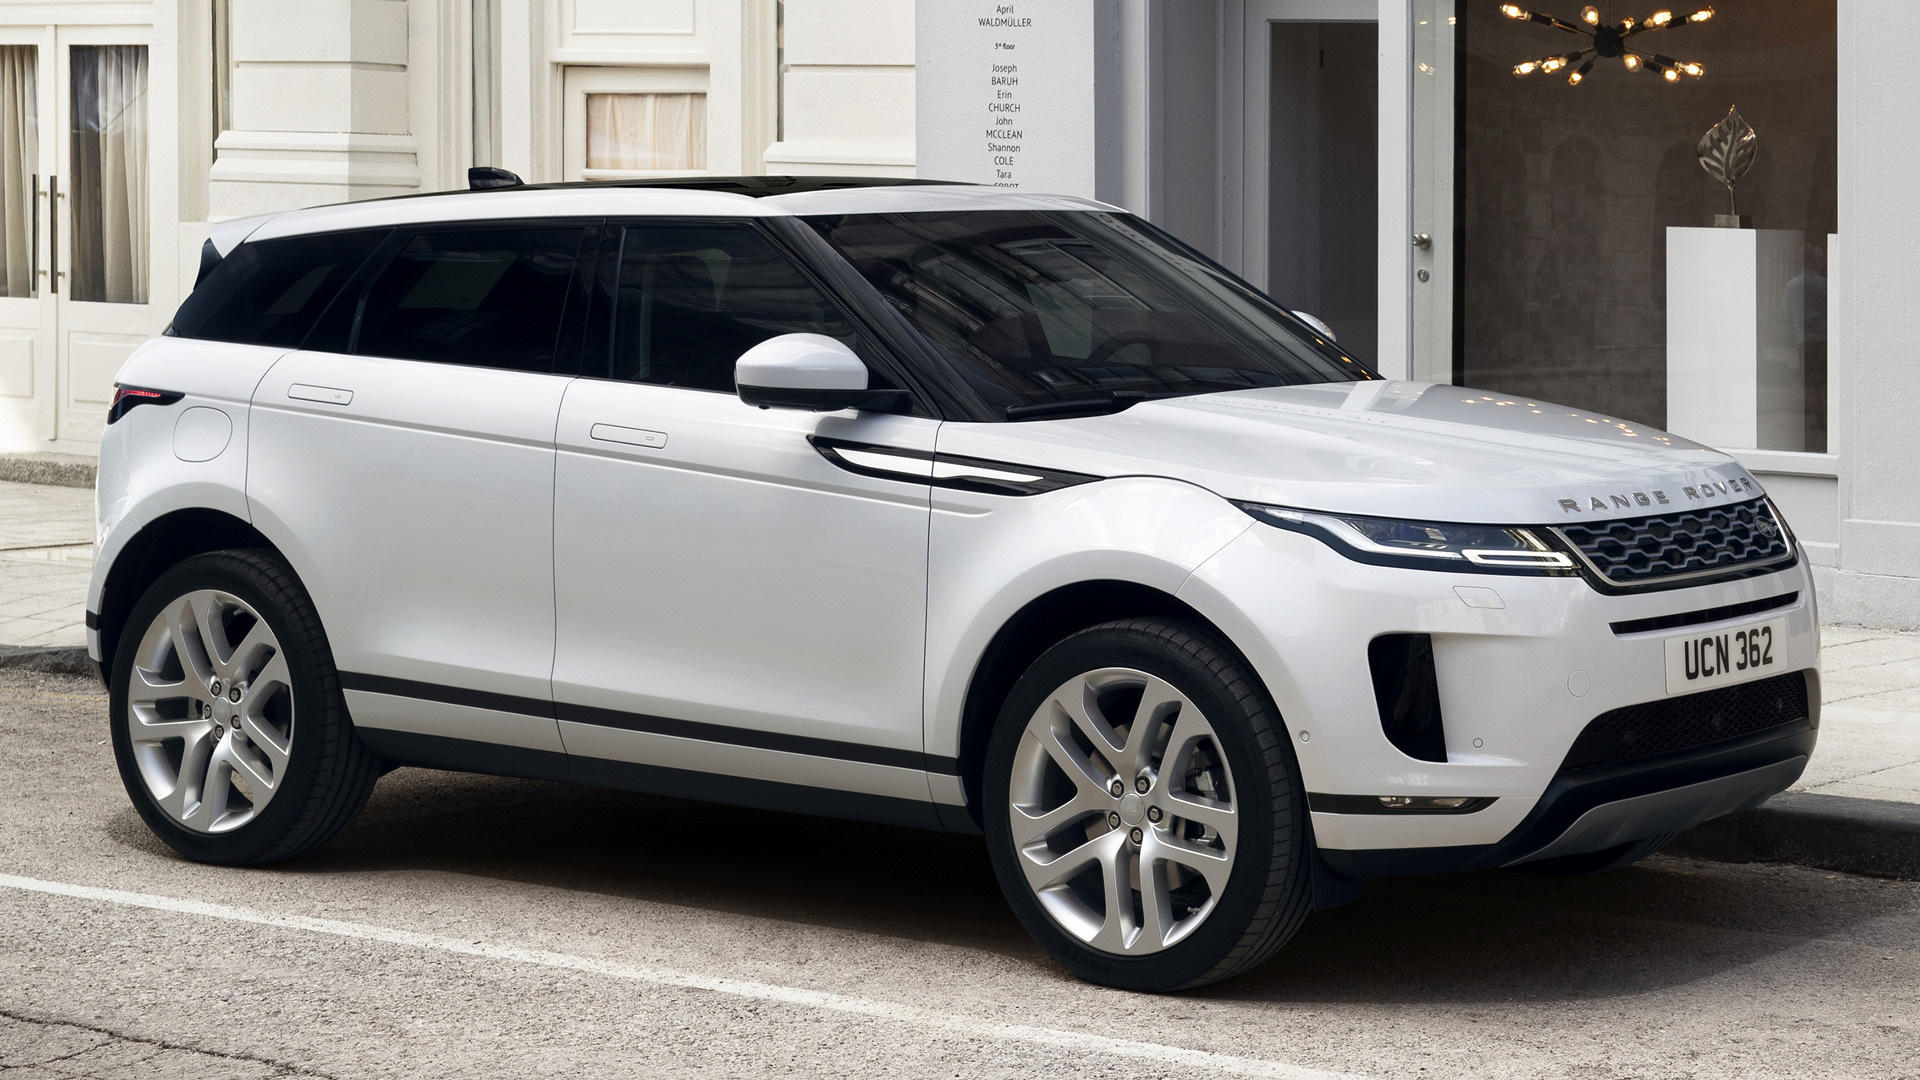 2019 range rover evoque wallpapers and hd images car pixel. Black Bedroom Furniture Sets. Home Design Ideas